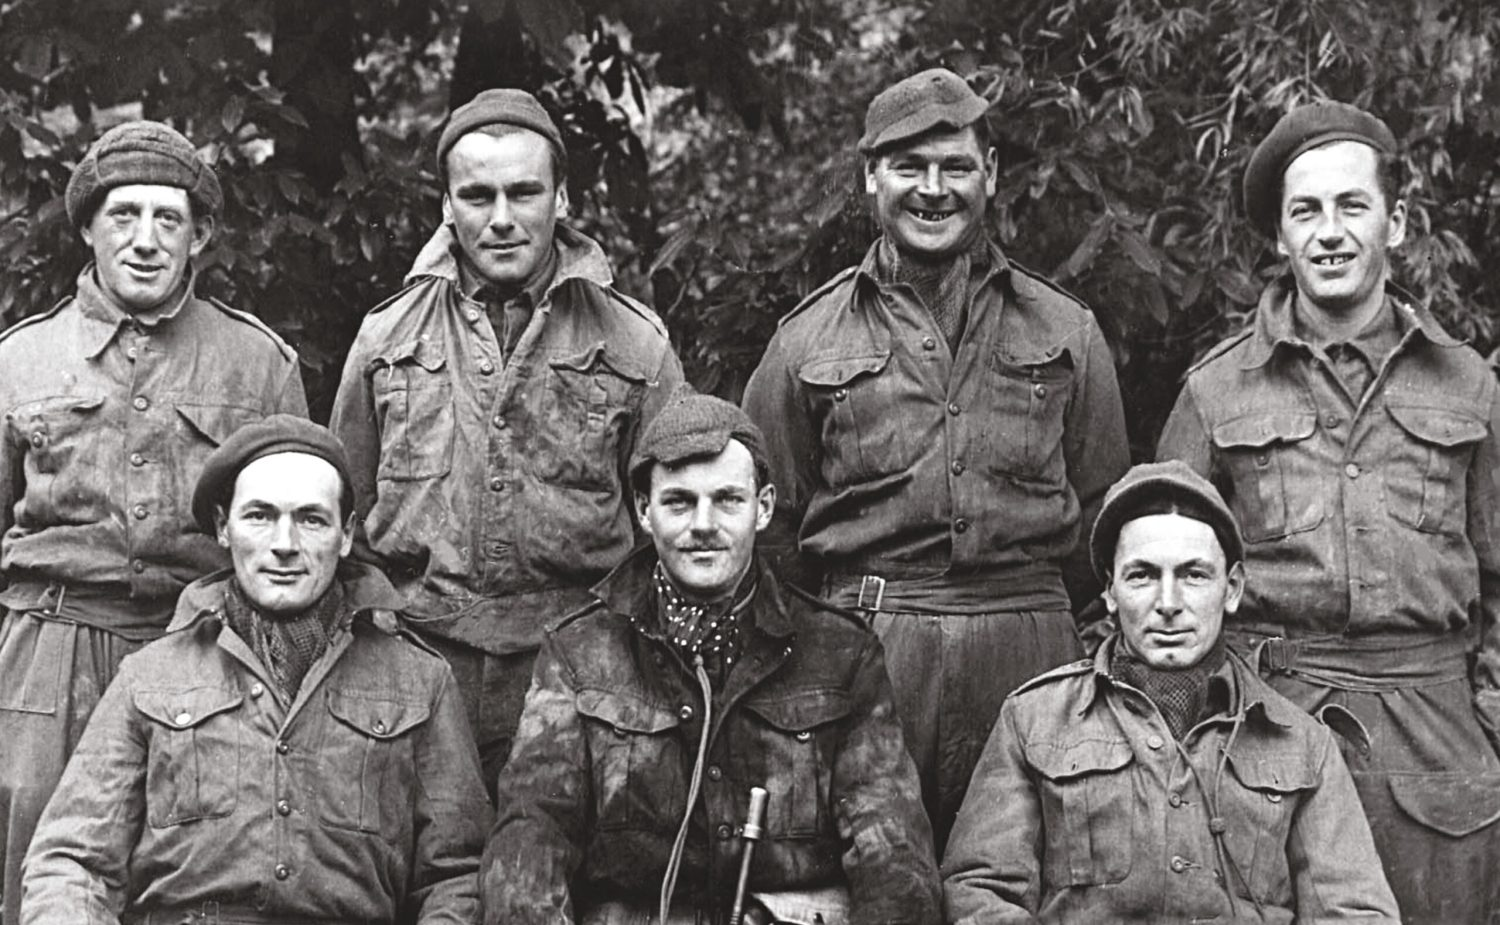 The Spetisbury Patrol in Dorset a rare contemporary photograph of an Auxiliary Patrol. Much remains unknown about Churchill's top-secret underground army.